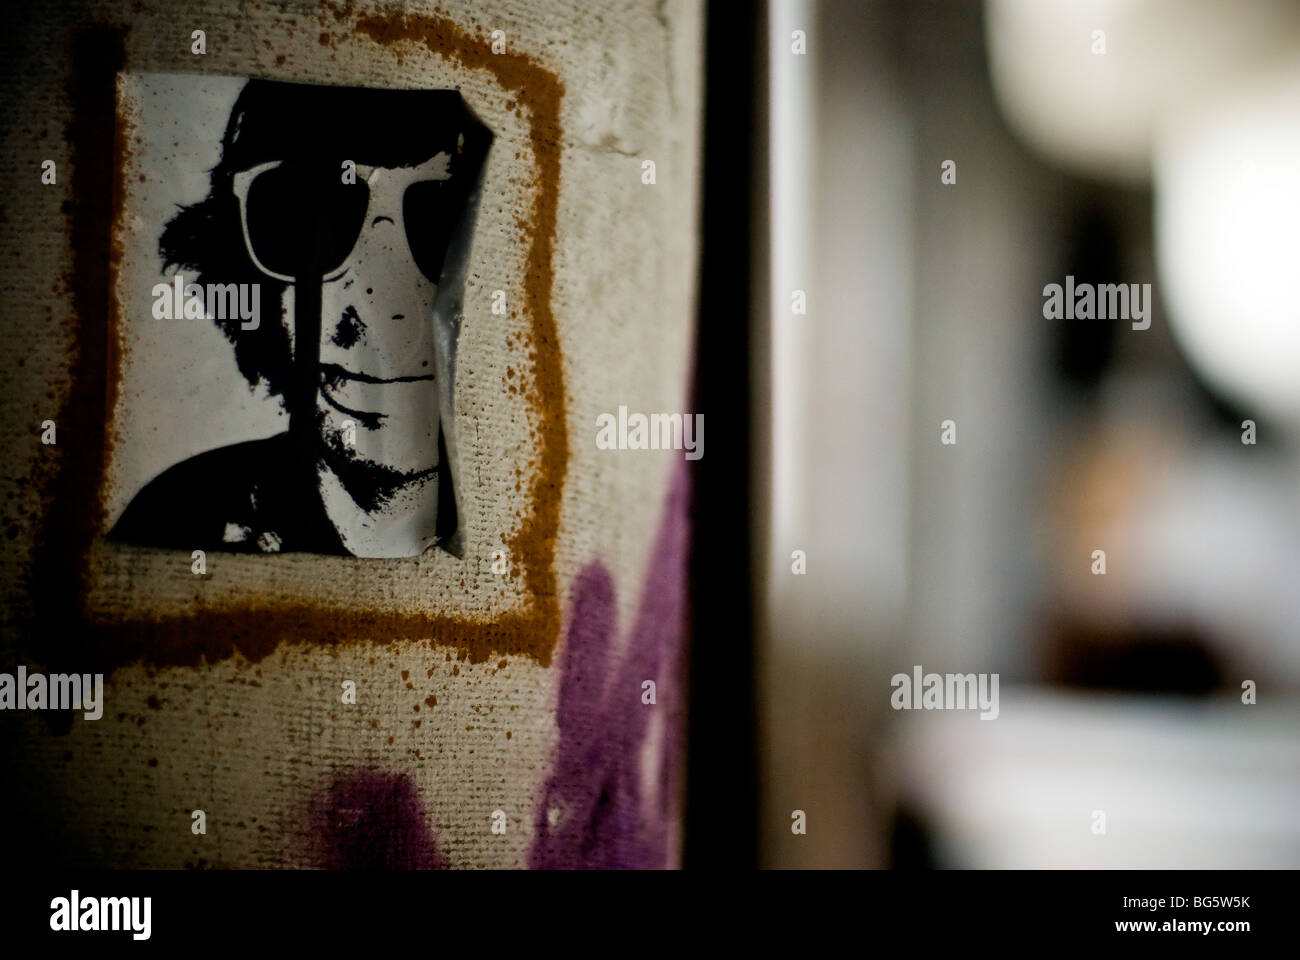 Sticker representing a face inside an old fabricate - Stock Image